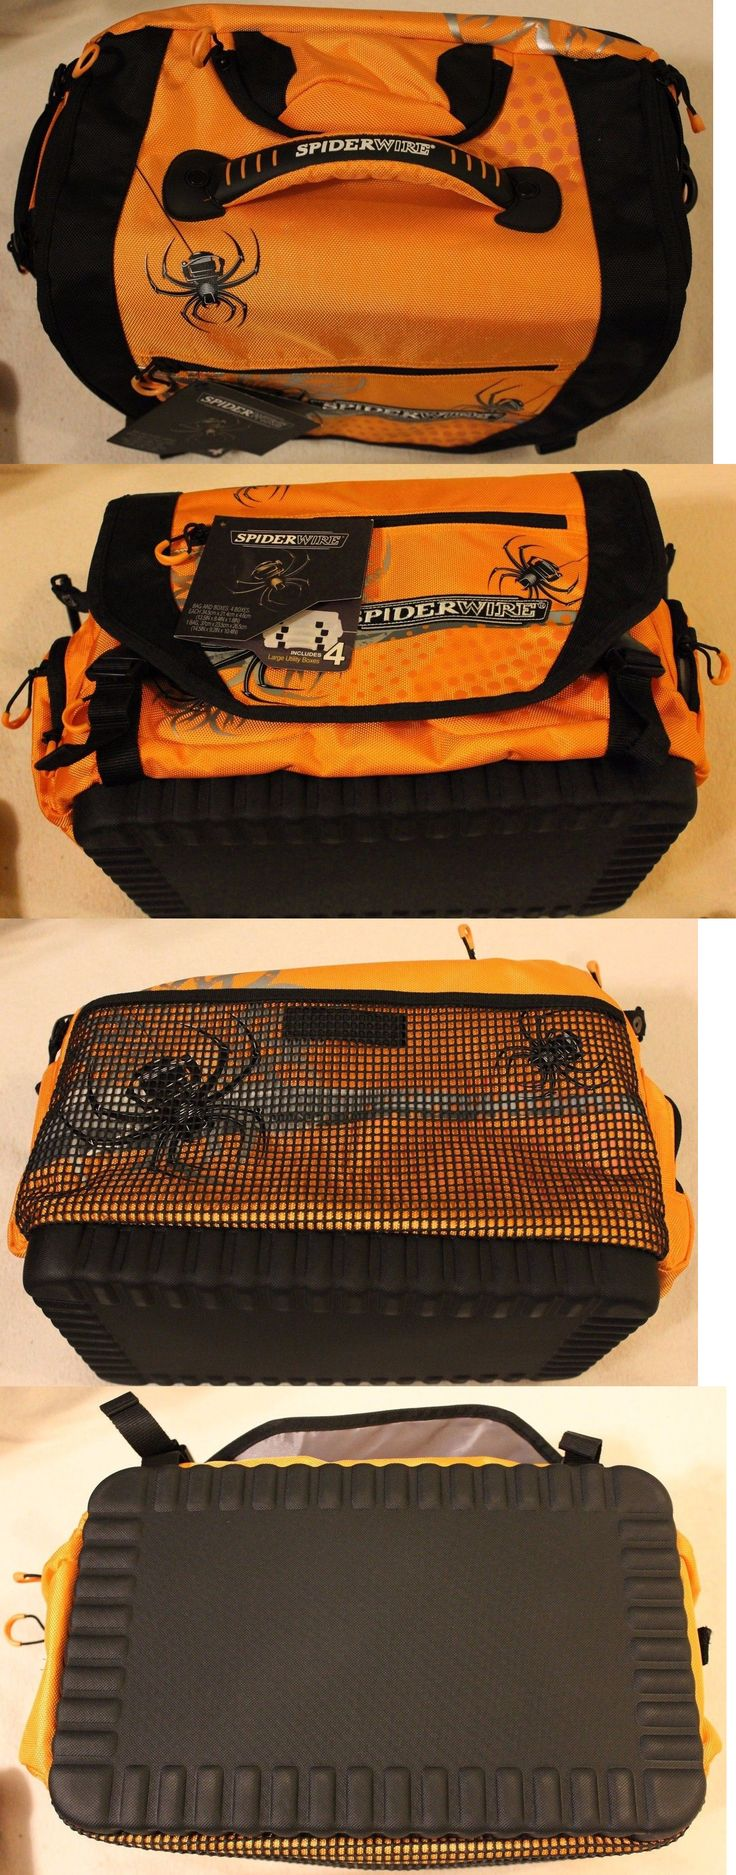 Tackle Boxes and Bags 22696: Spiderwire Large Orange Tackle Bag Soft Sided - 4 Oganizers -> BUY IT NOW ONLY: $44.99 on eBay!